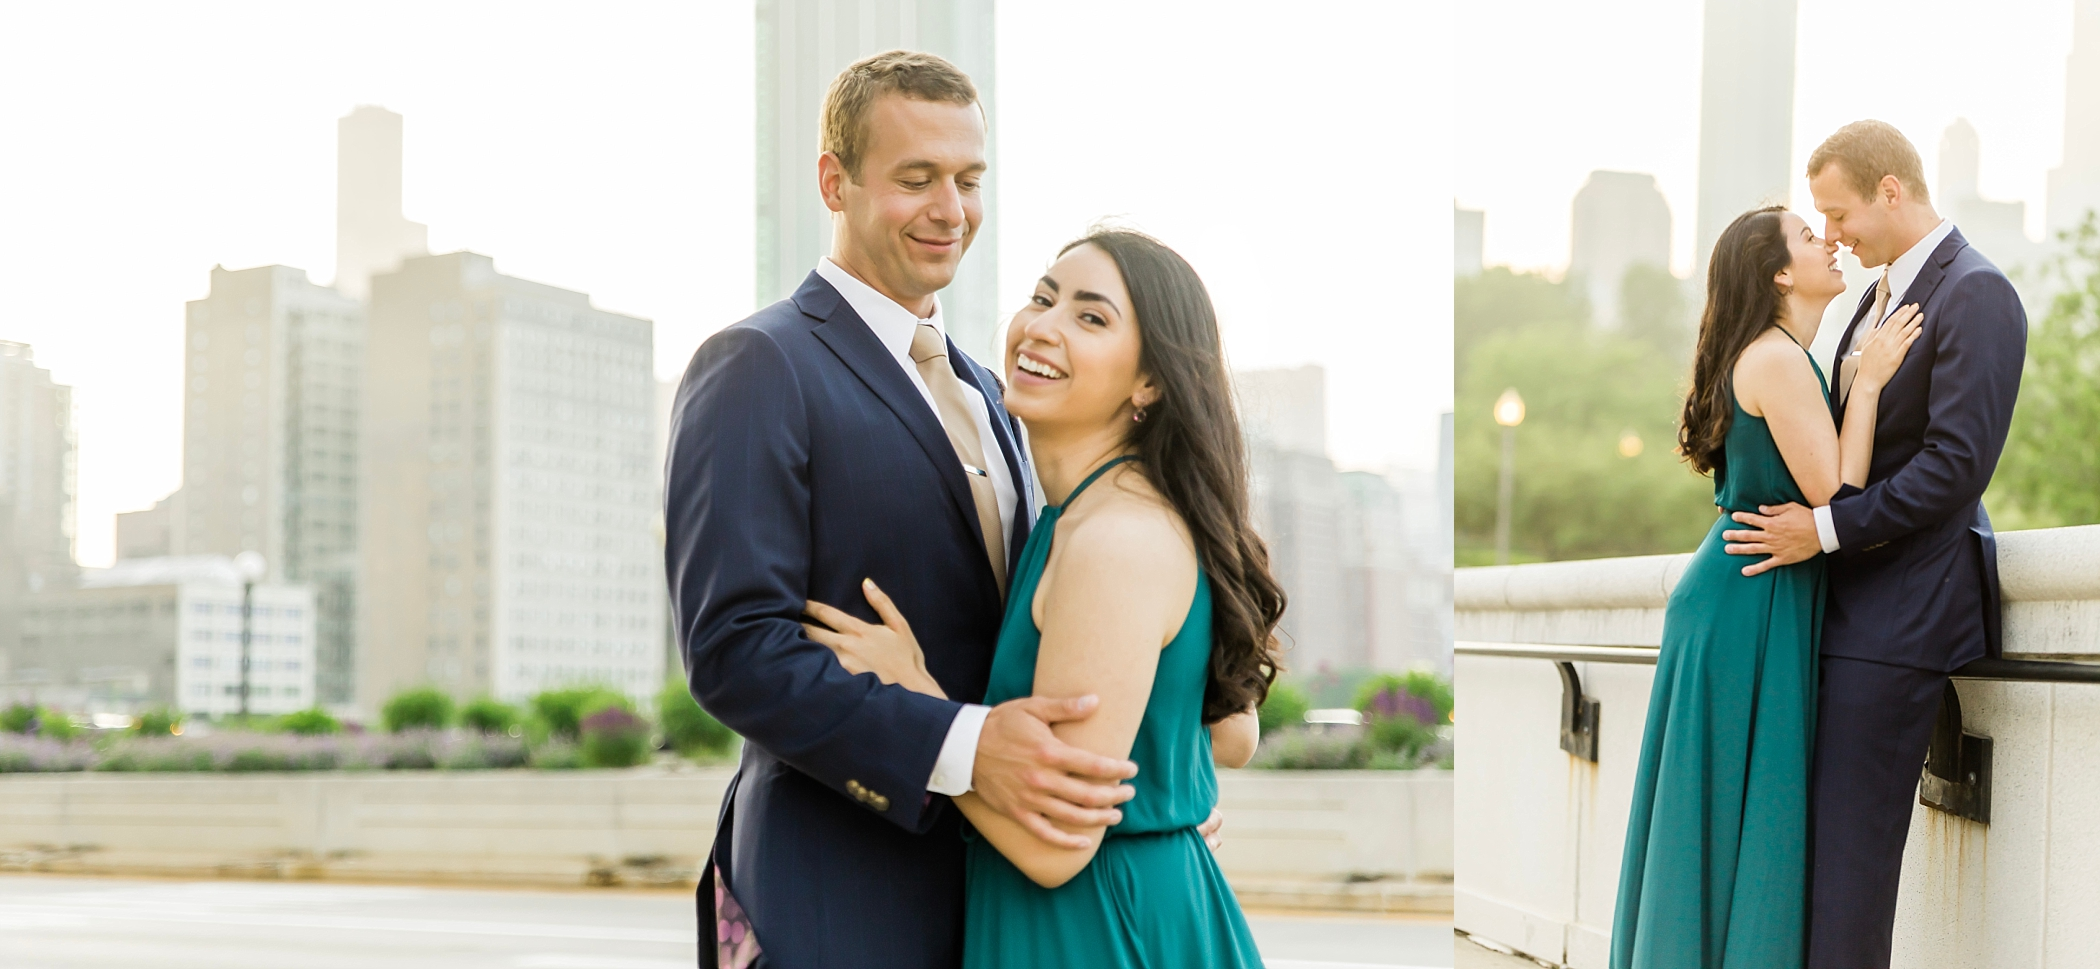 chicago engagement photography love in the windy and foggy city_0301.jpg